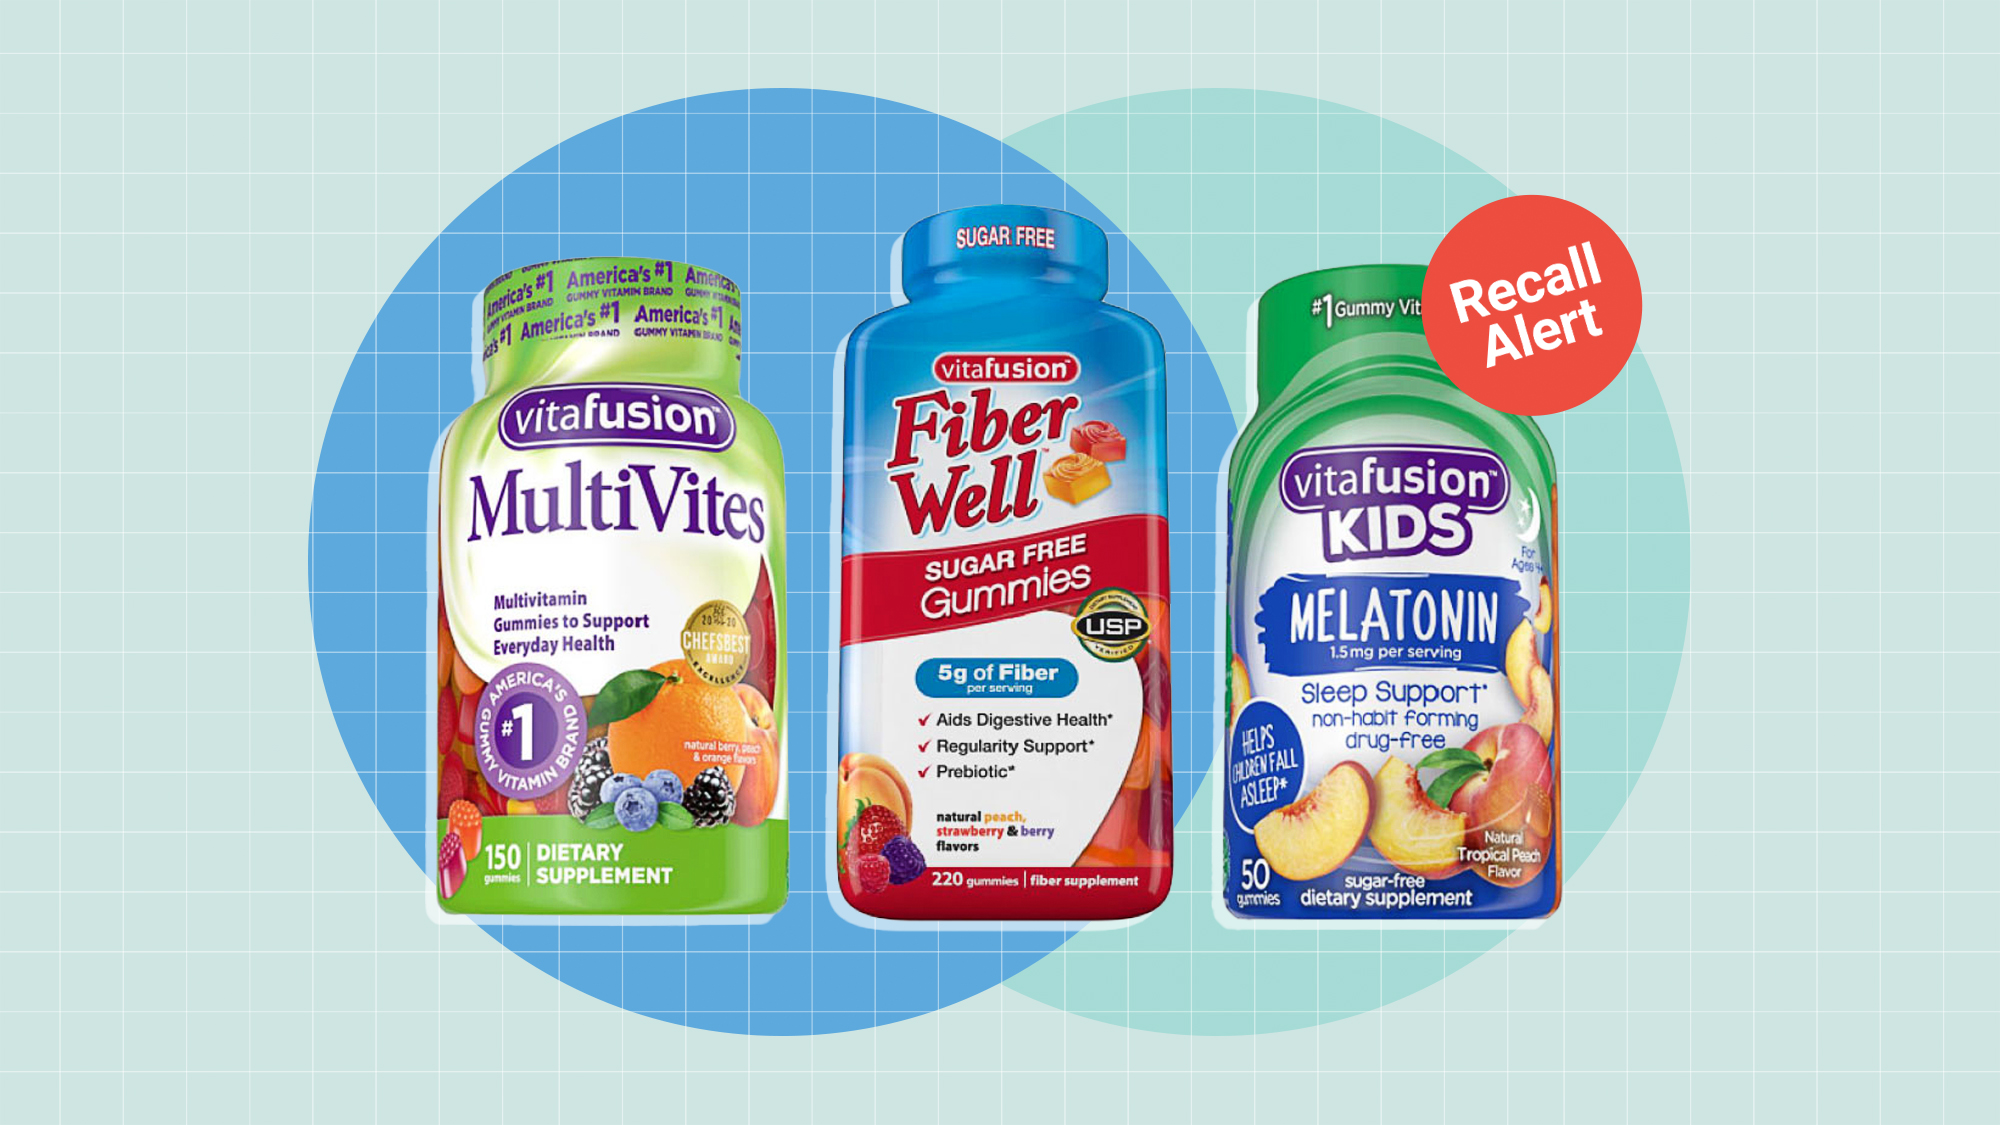 3 Vitafusion products that have been recalled by the FDA